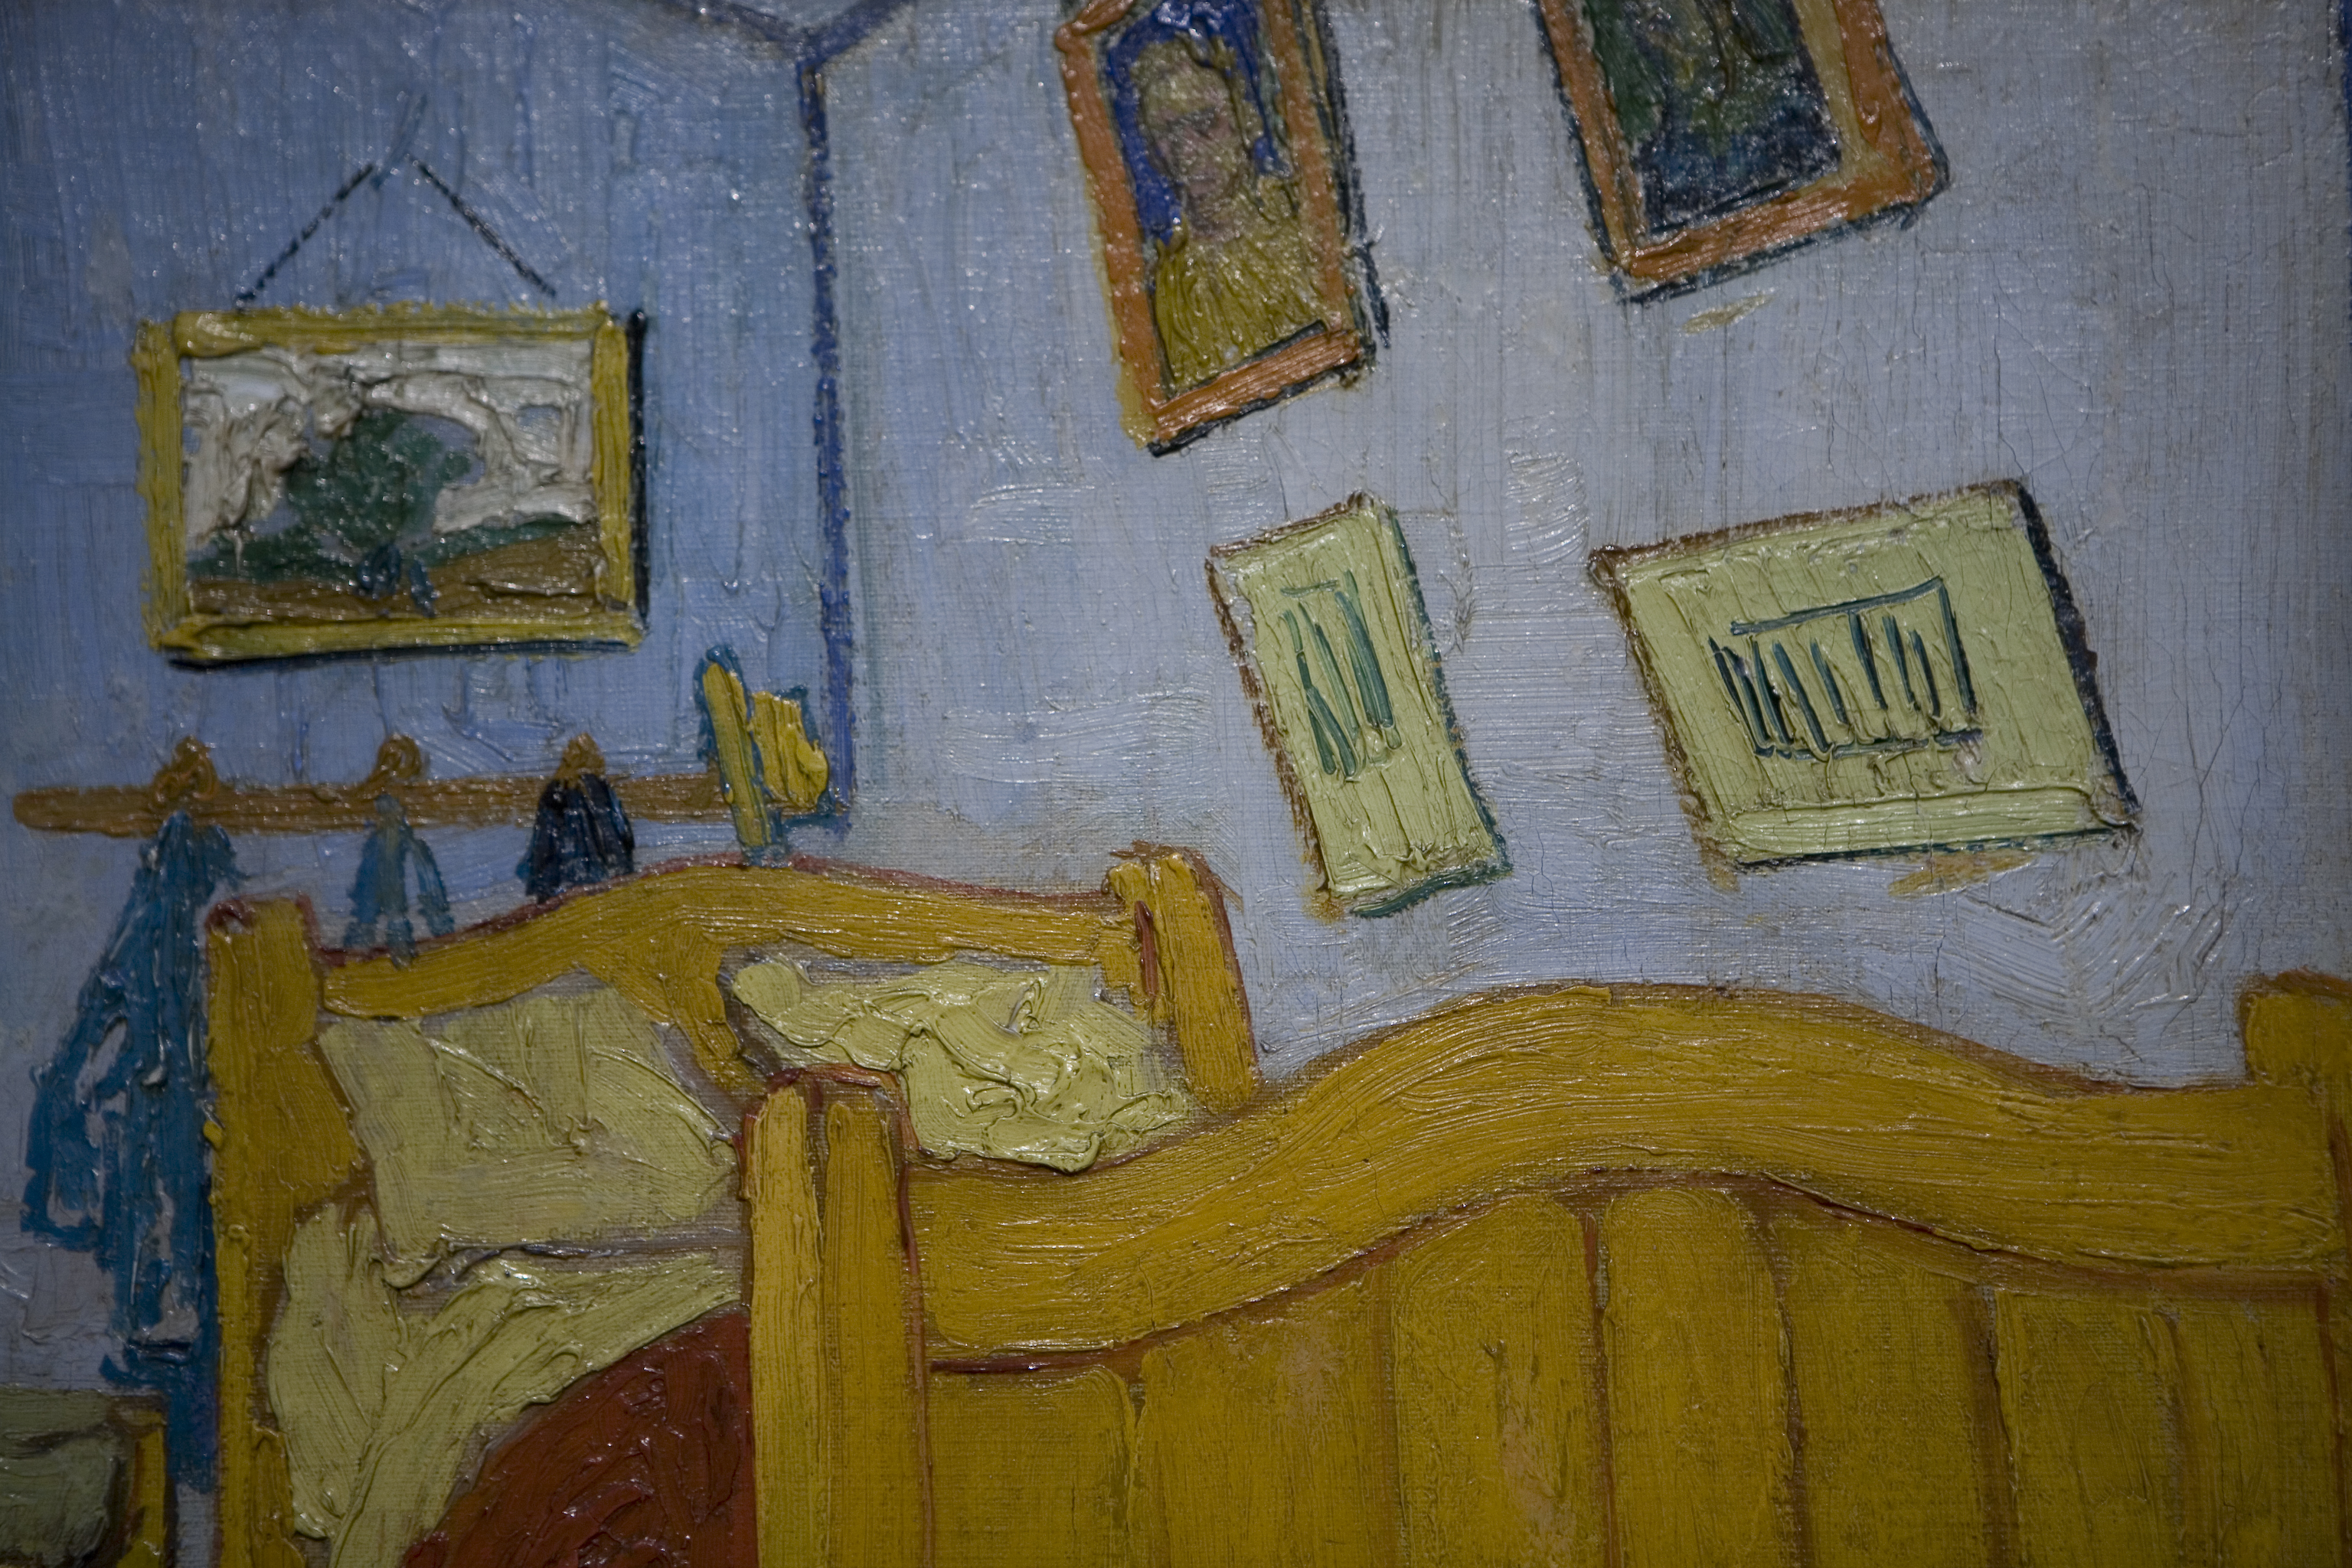 filewlanl arts of akki de slaapkamer vincent van gogh 1888